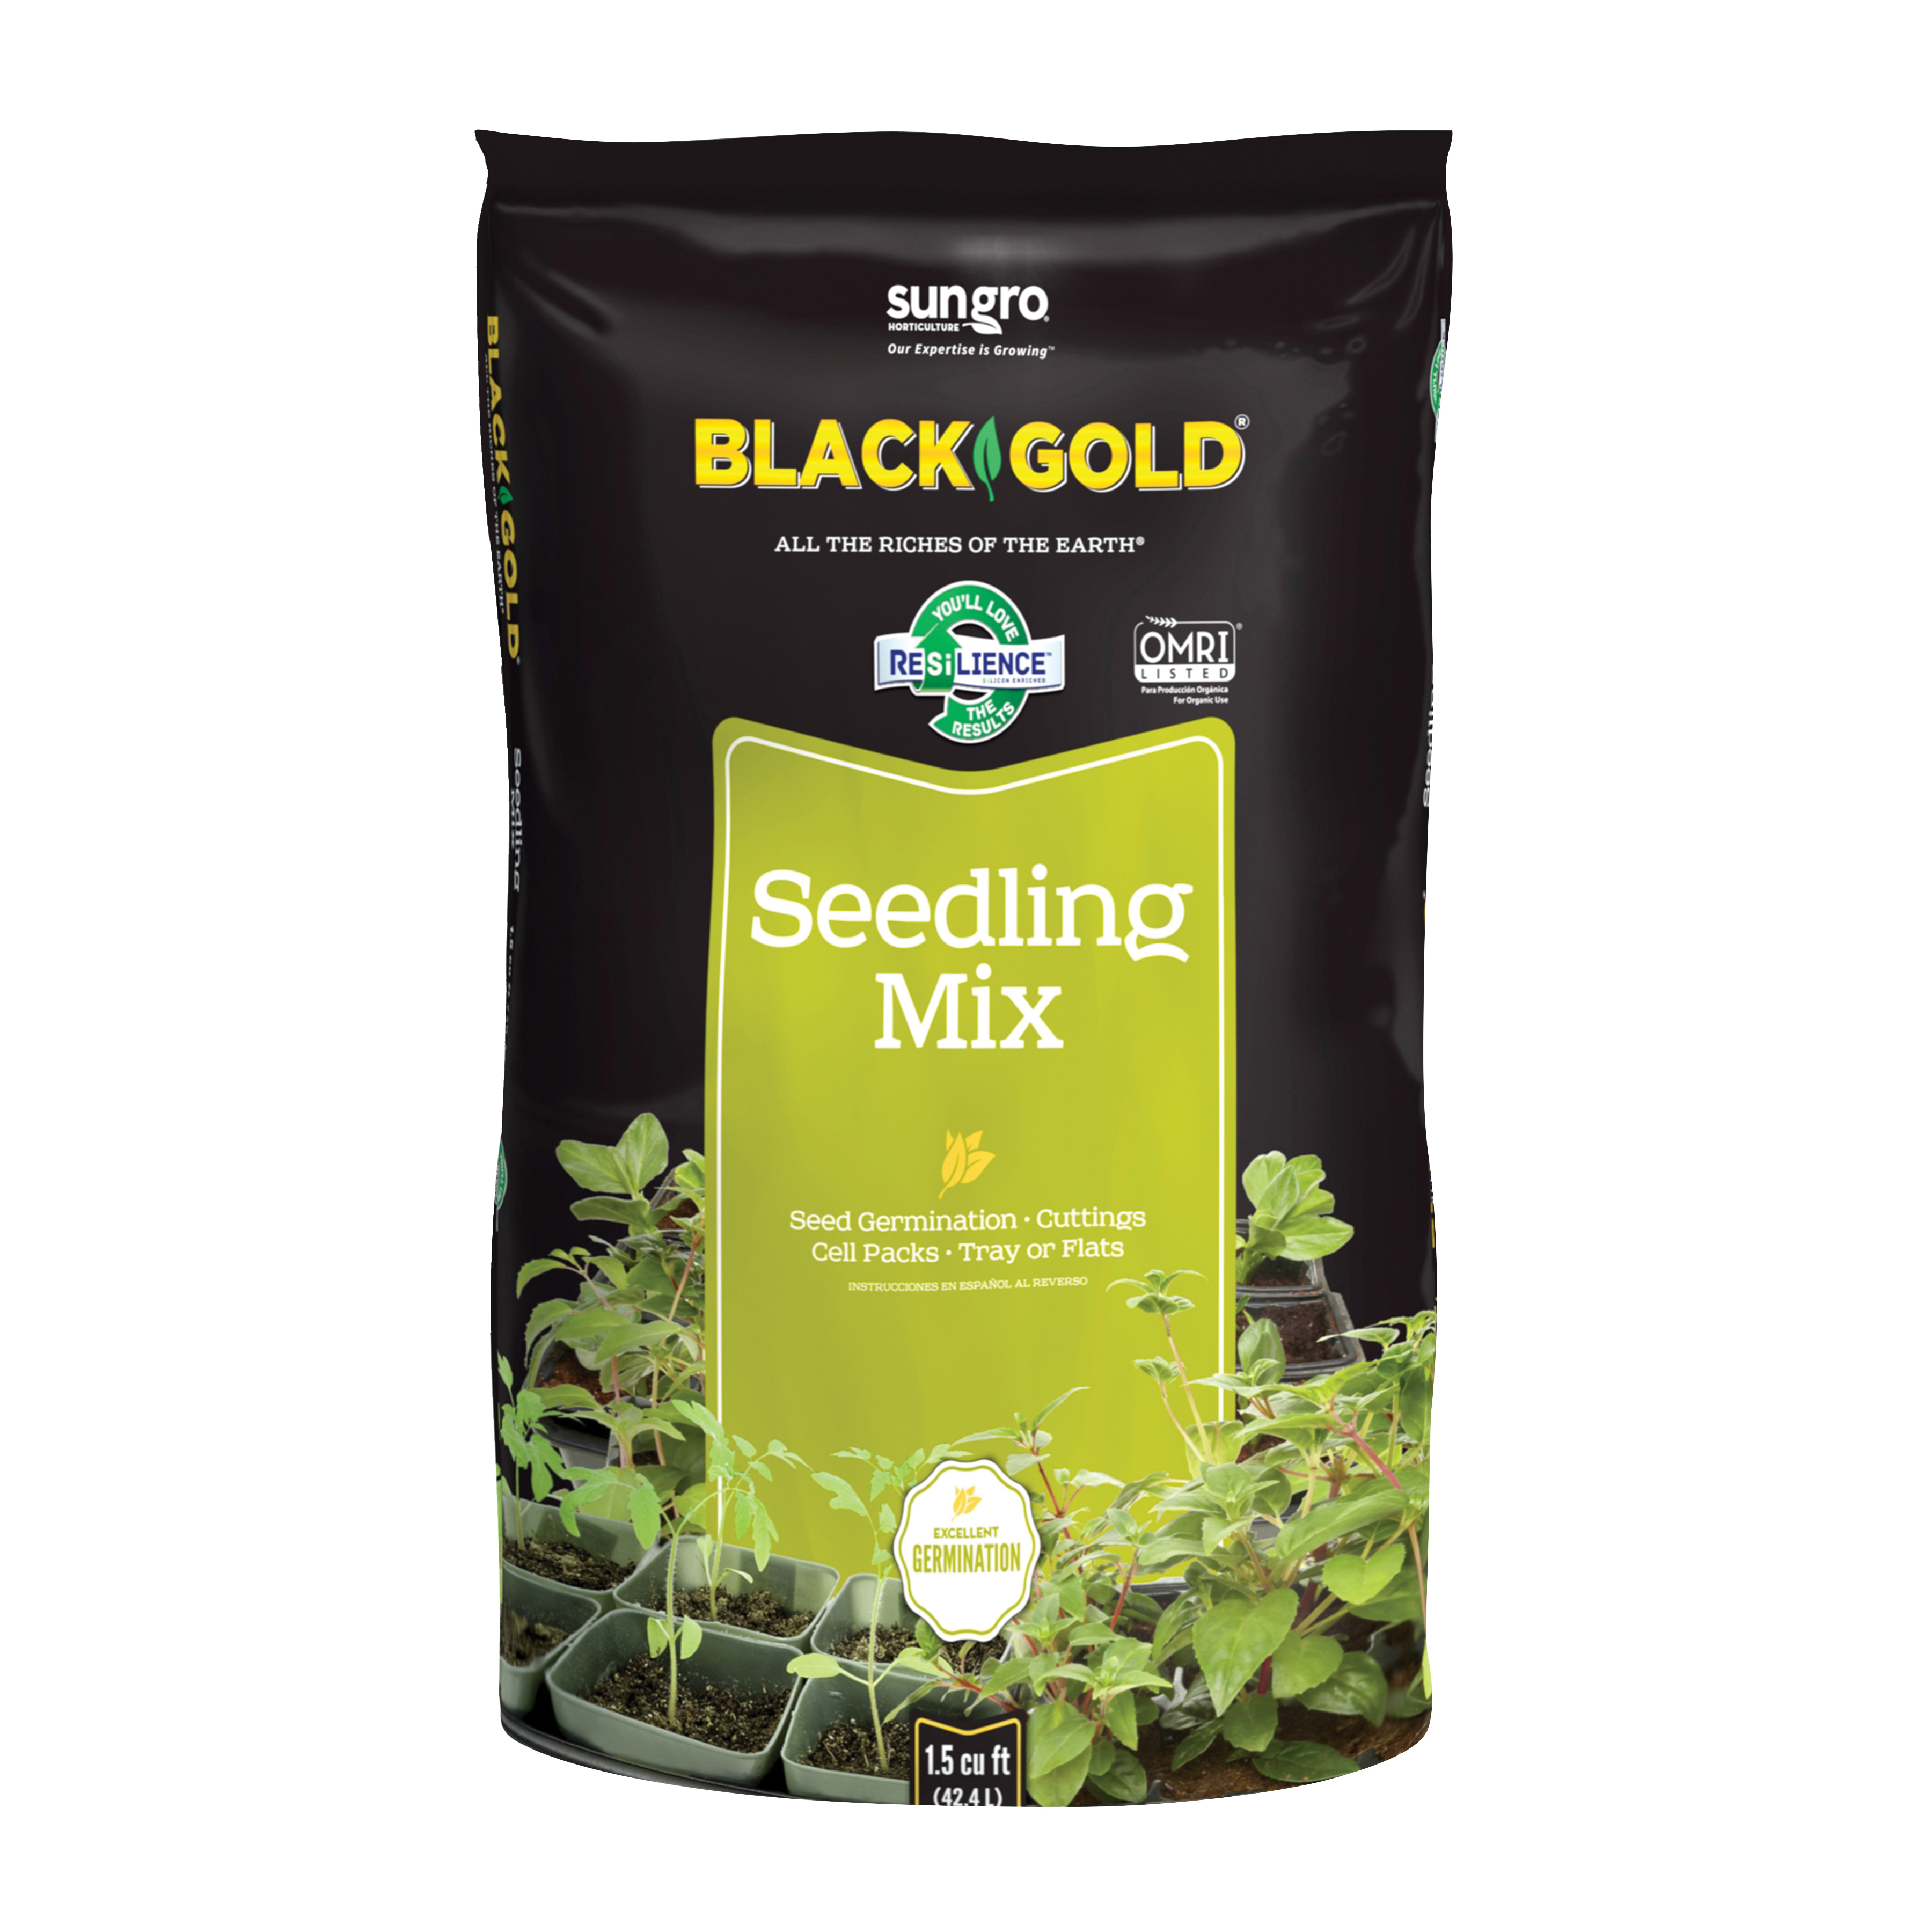 Picture of sun gro BLACK GOLD 1411002.CFL001.5P Seedling Mix, 1-1/2 cu-ft Package, Bag